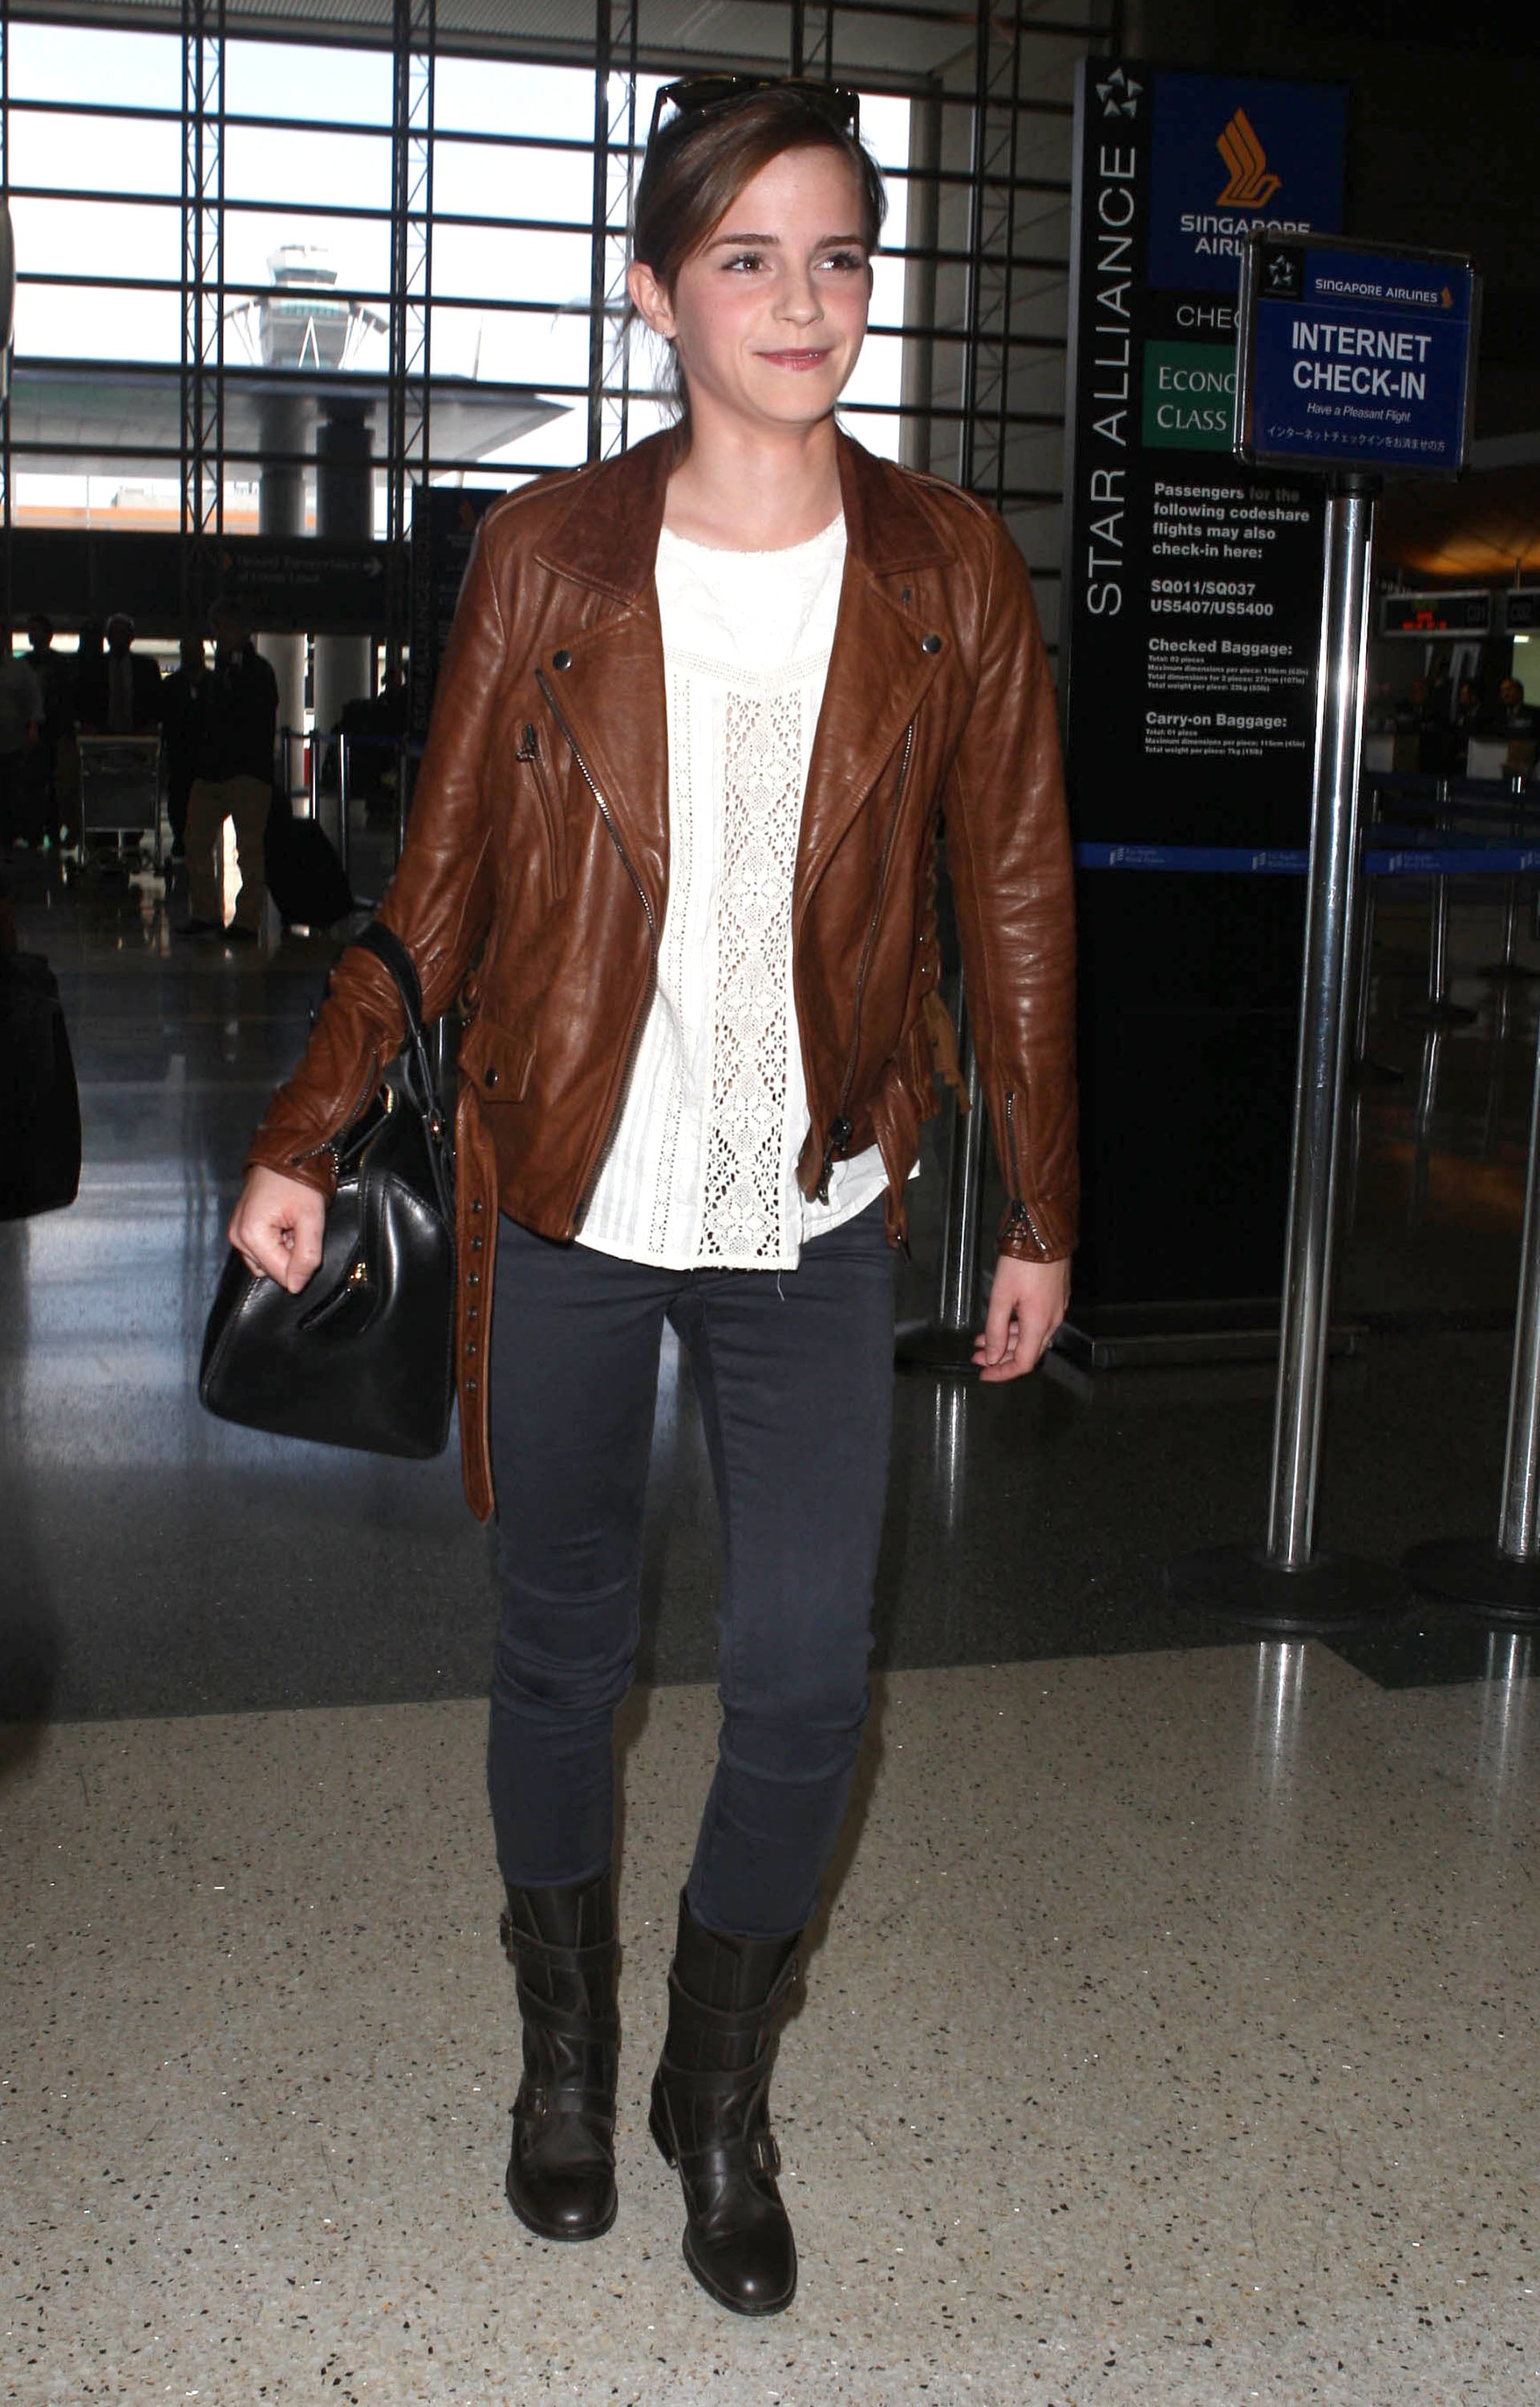 Emma Watson added edgy polish to her airport ensemble with the help of a brown motorcycle jacket and AG velvet jeans.